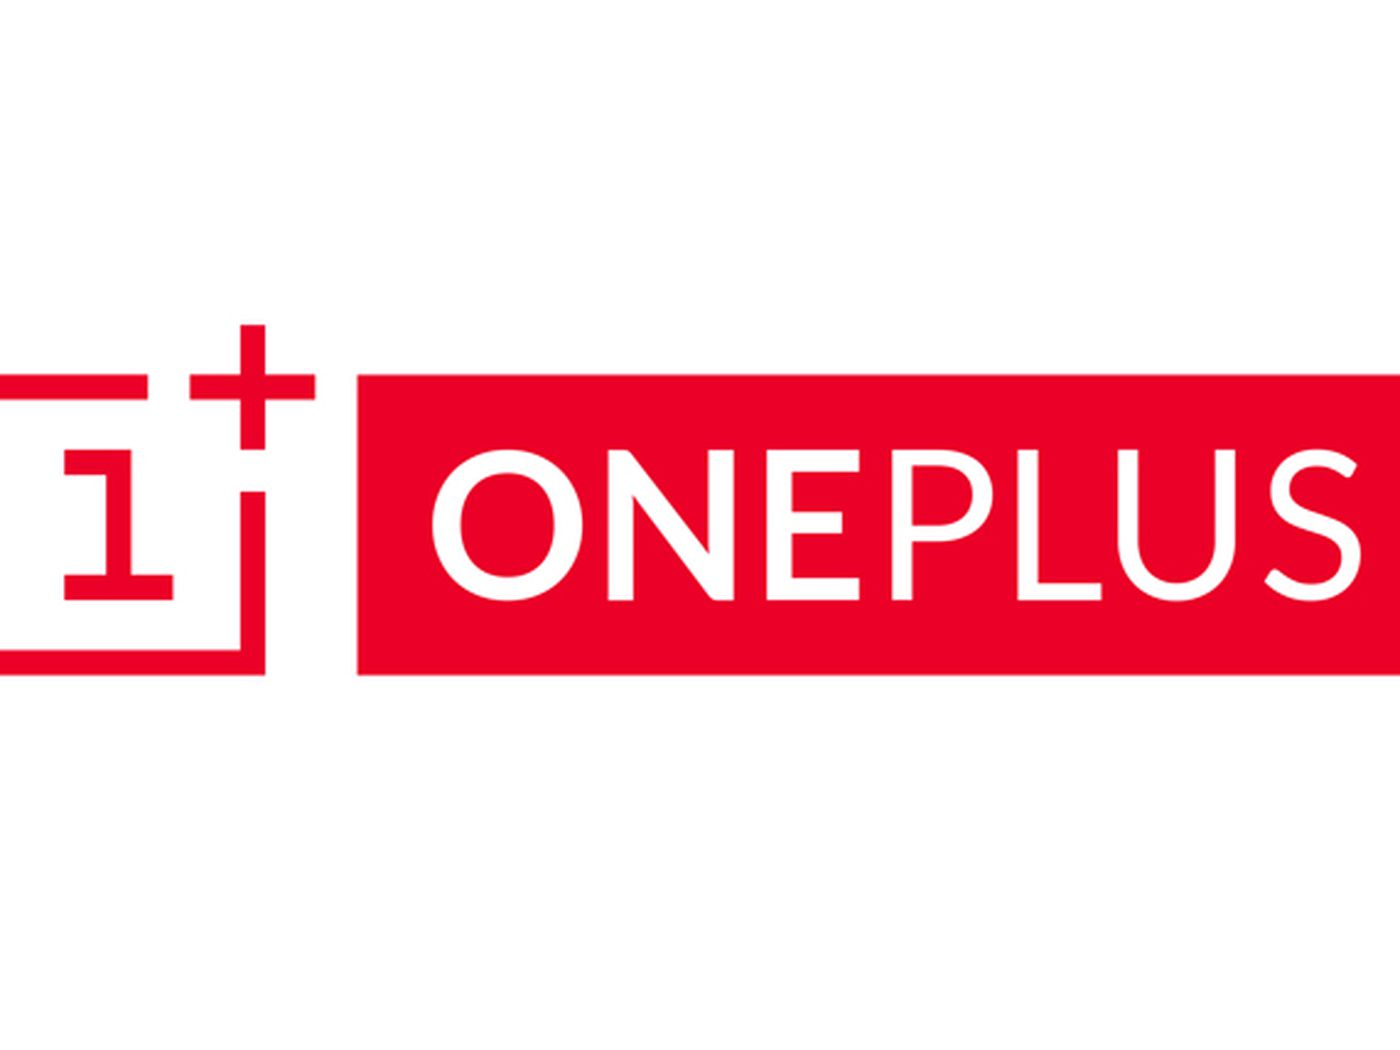 From Oppo to OnePlus: a new company wants to build the next great